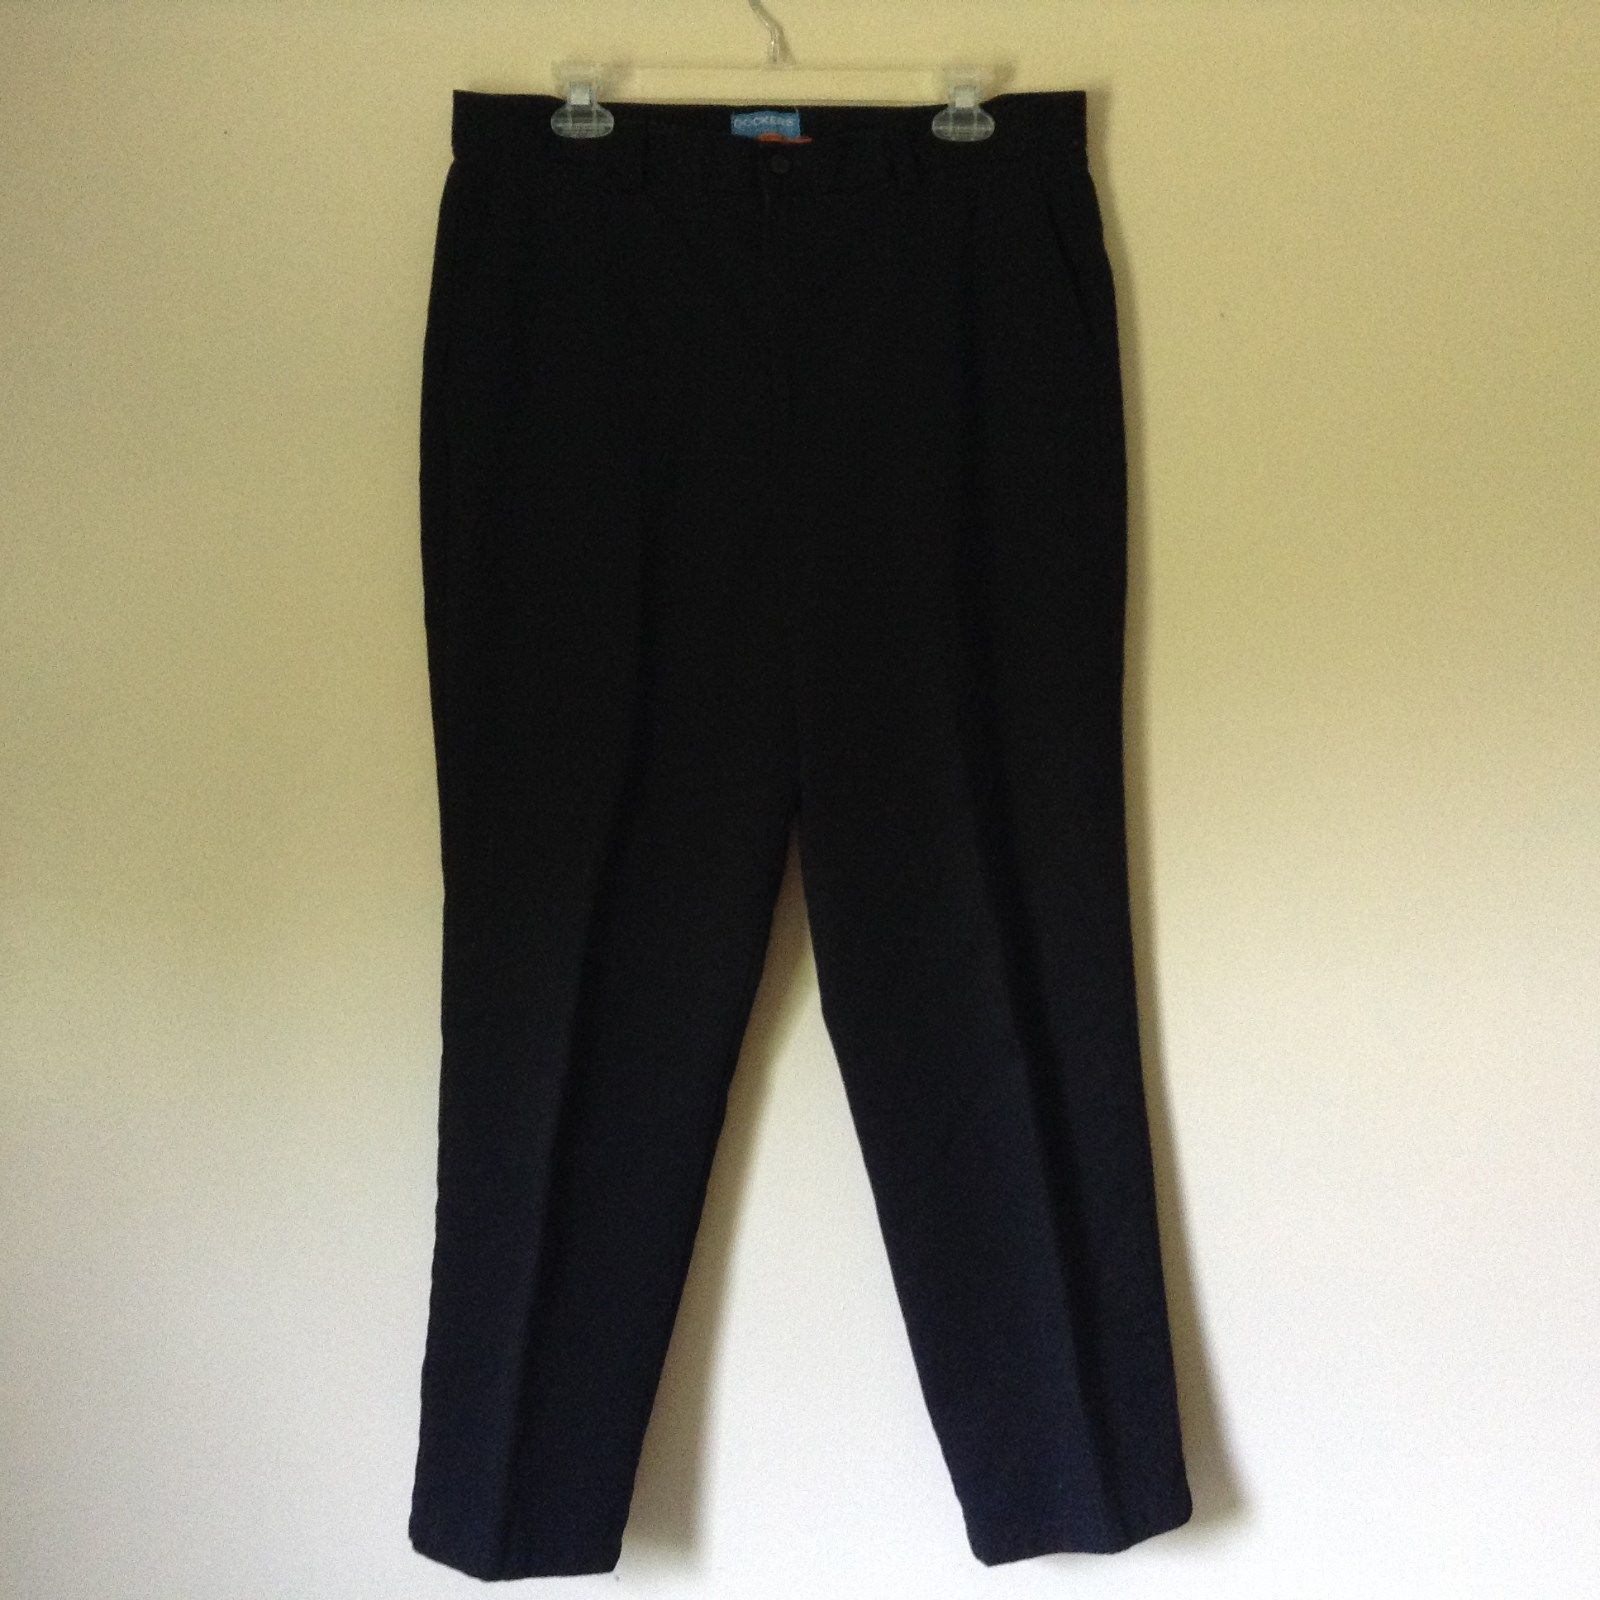 DOCKERS Stain Defender Black Casual Pants Size 16 Short 100 Percent Cotton